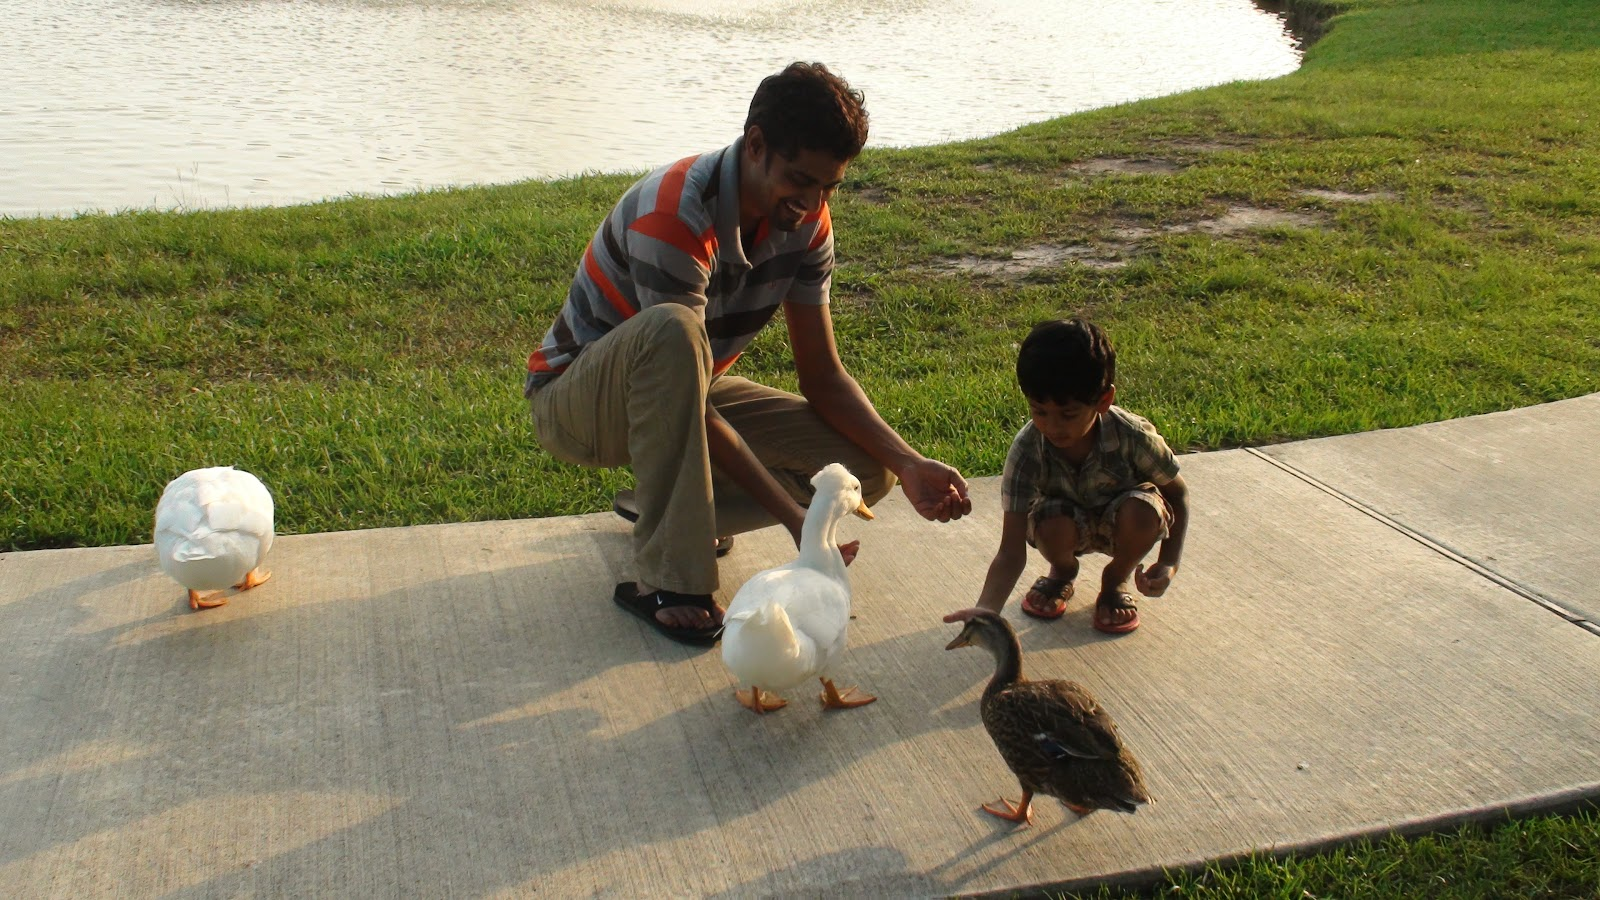 Life Experiences Feeding Ducks At Fairwiew Mandeville La